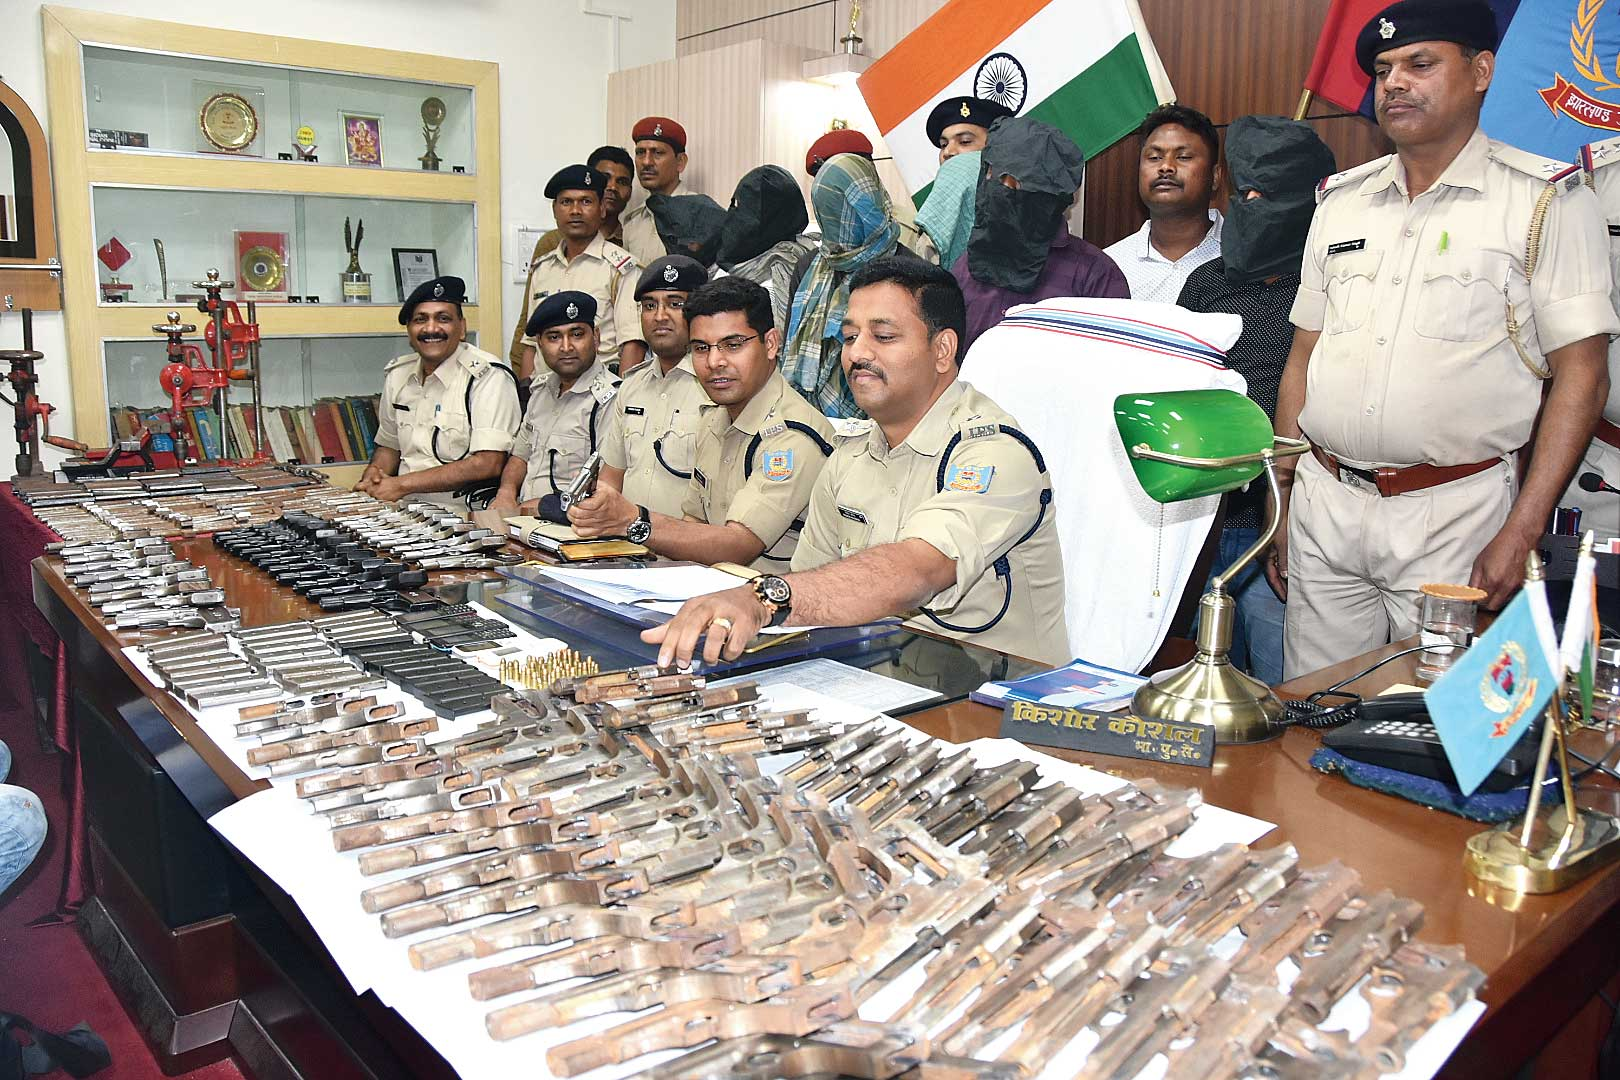 The recovered guns along with the arrested men at Dhanbad SSP's office on Sunday.